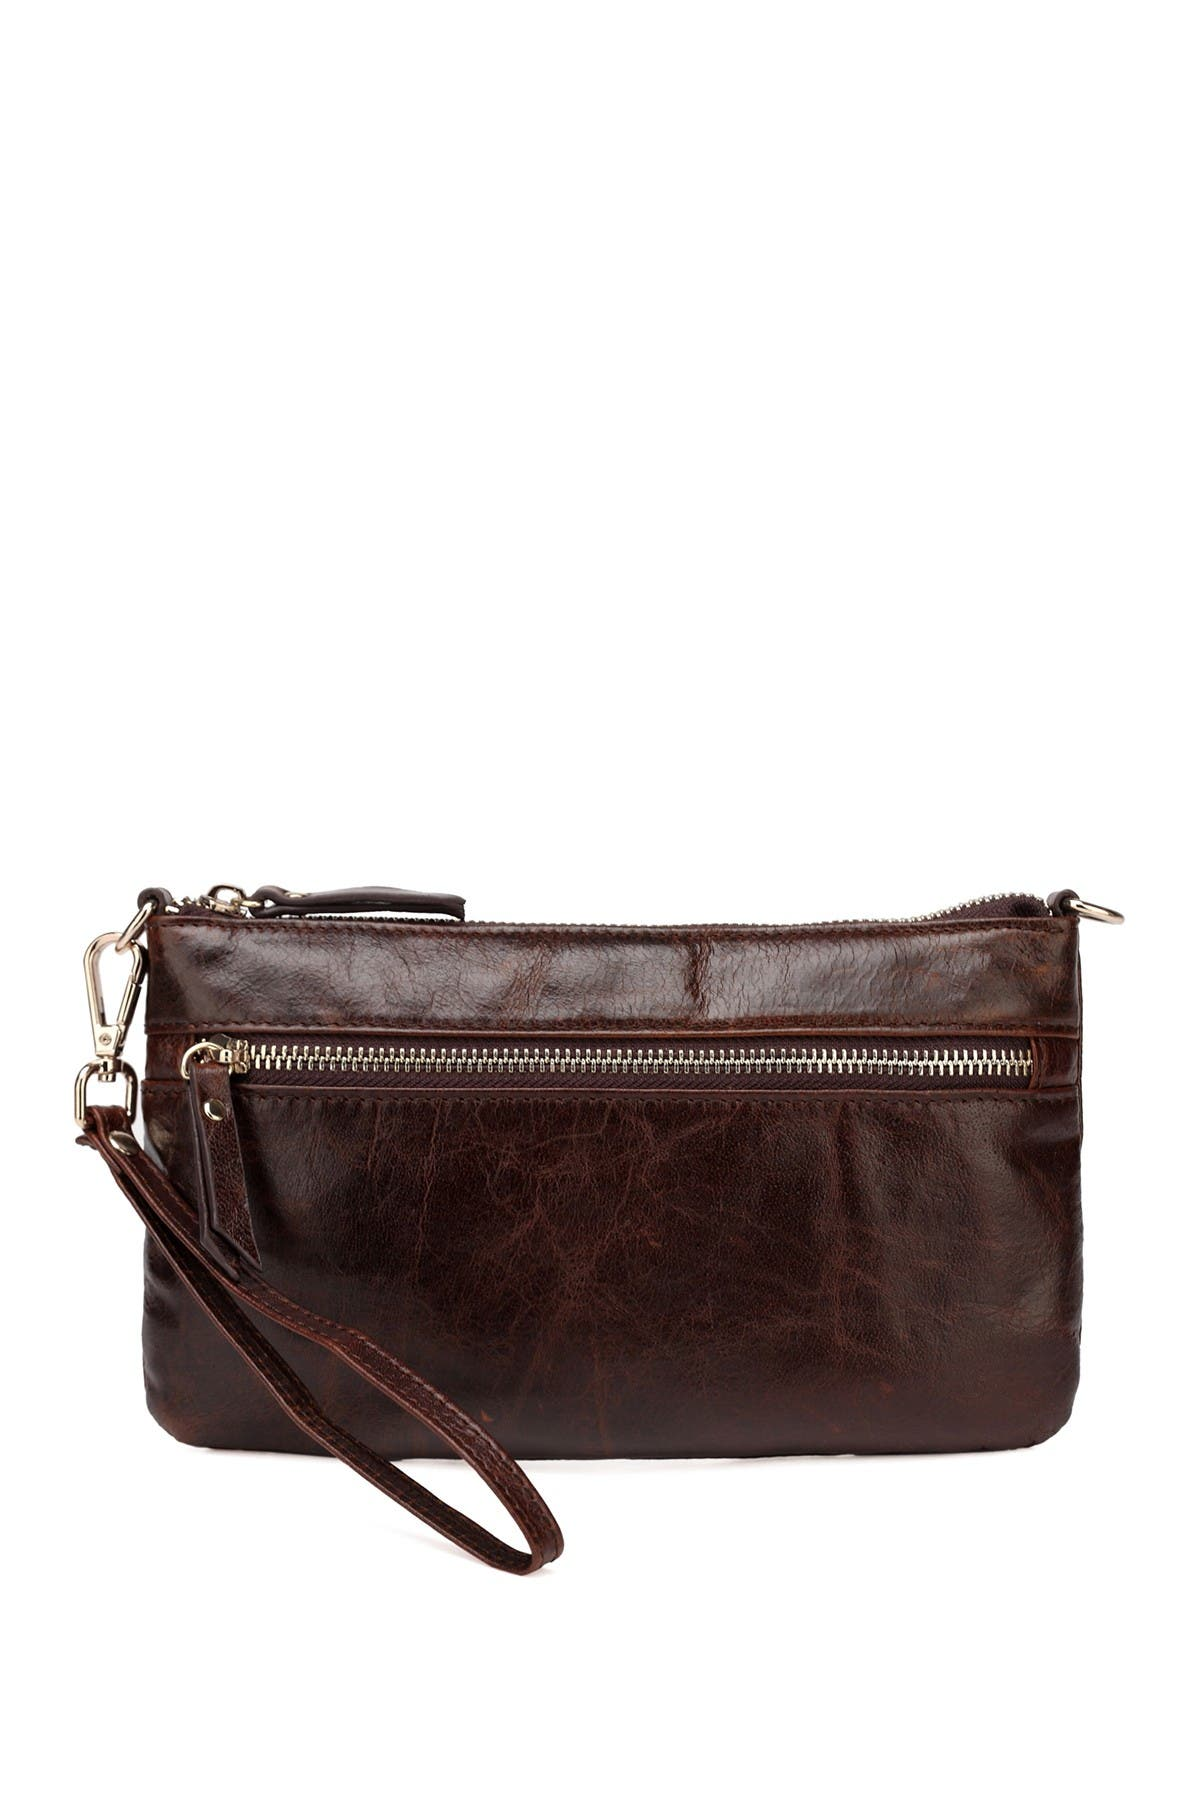 Image of Vicenzo Leather Maci Distressed Leather Crossbody Clutch